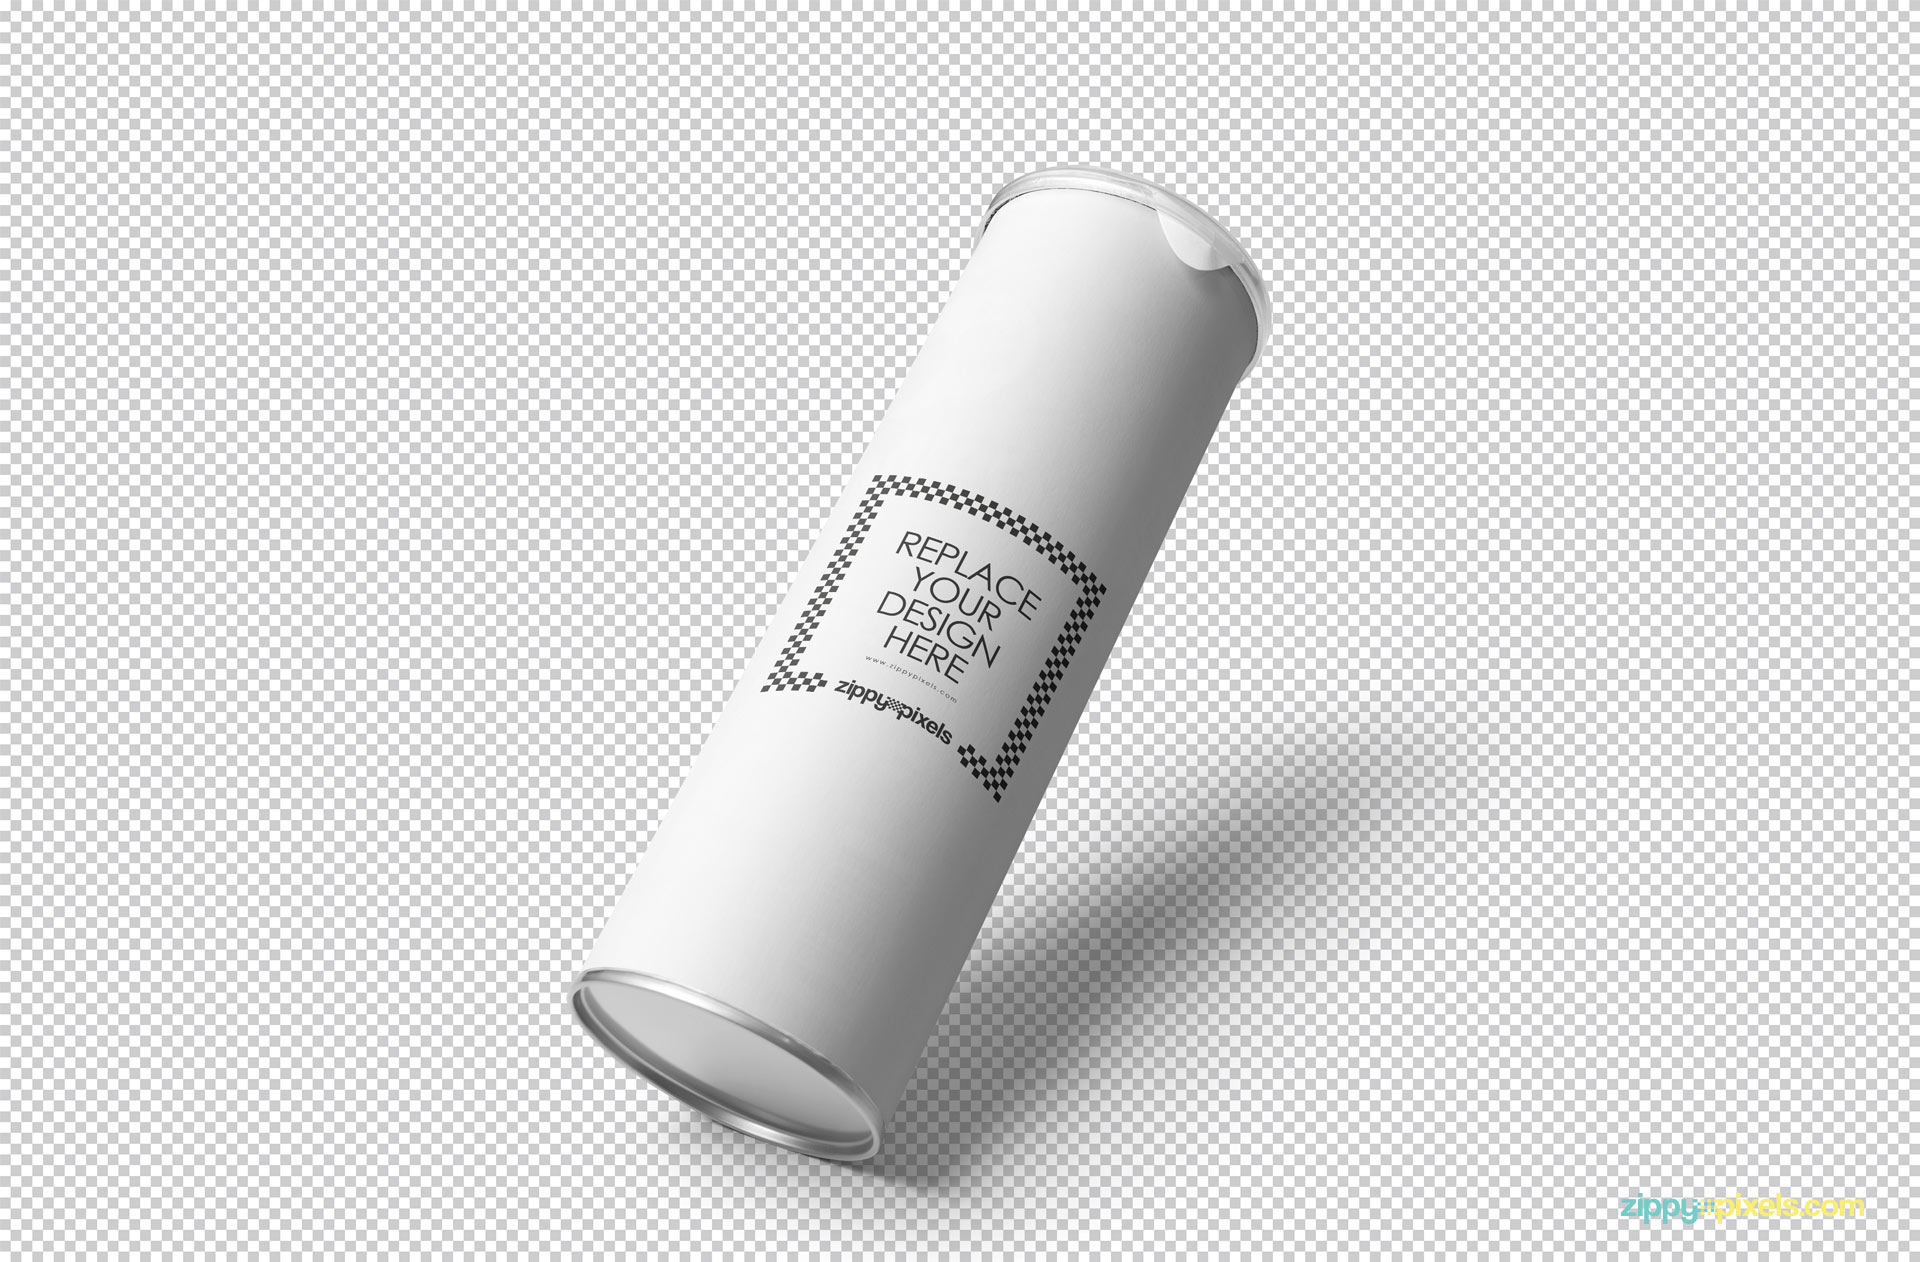 Simply use smart object option to replace the design of cardboard tube.